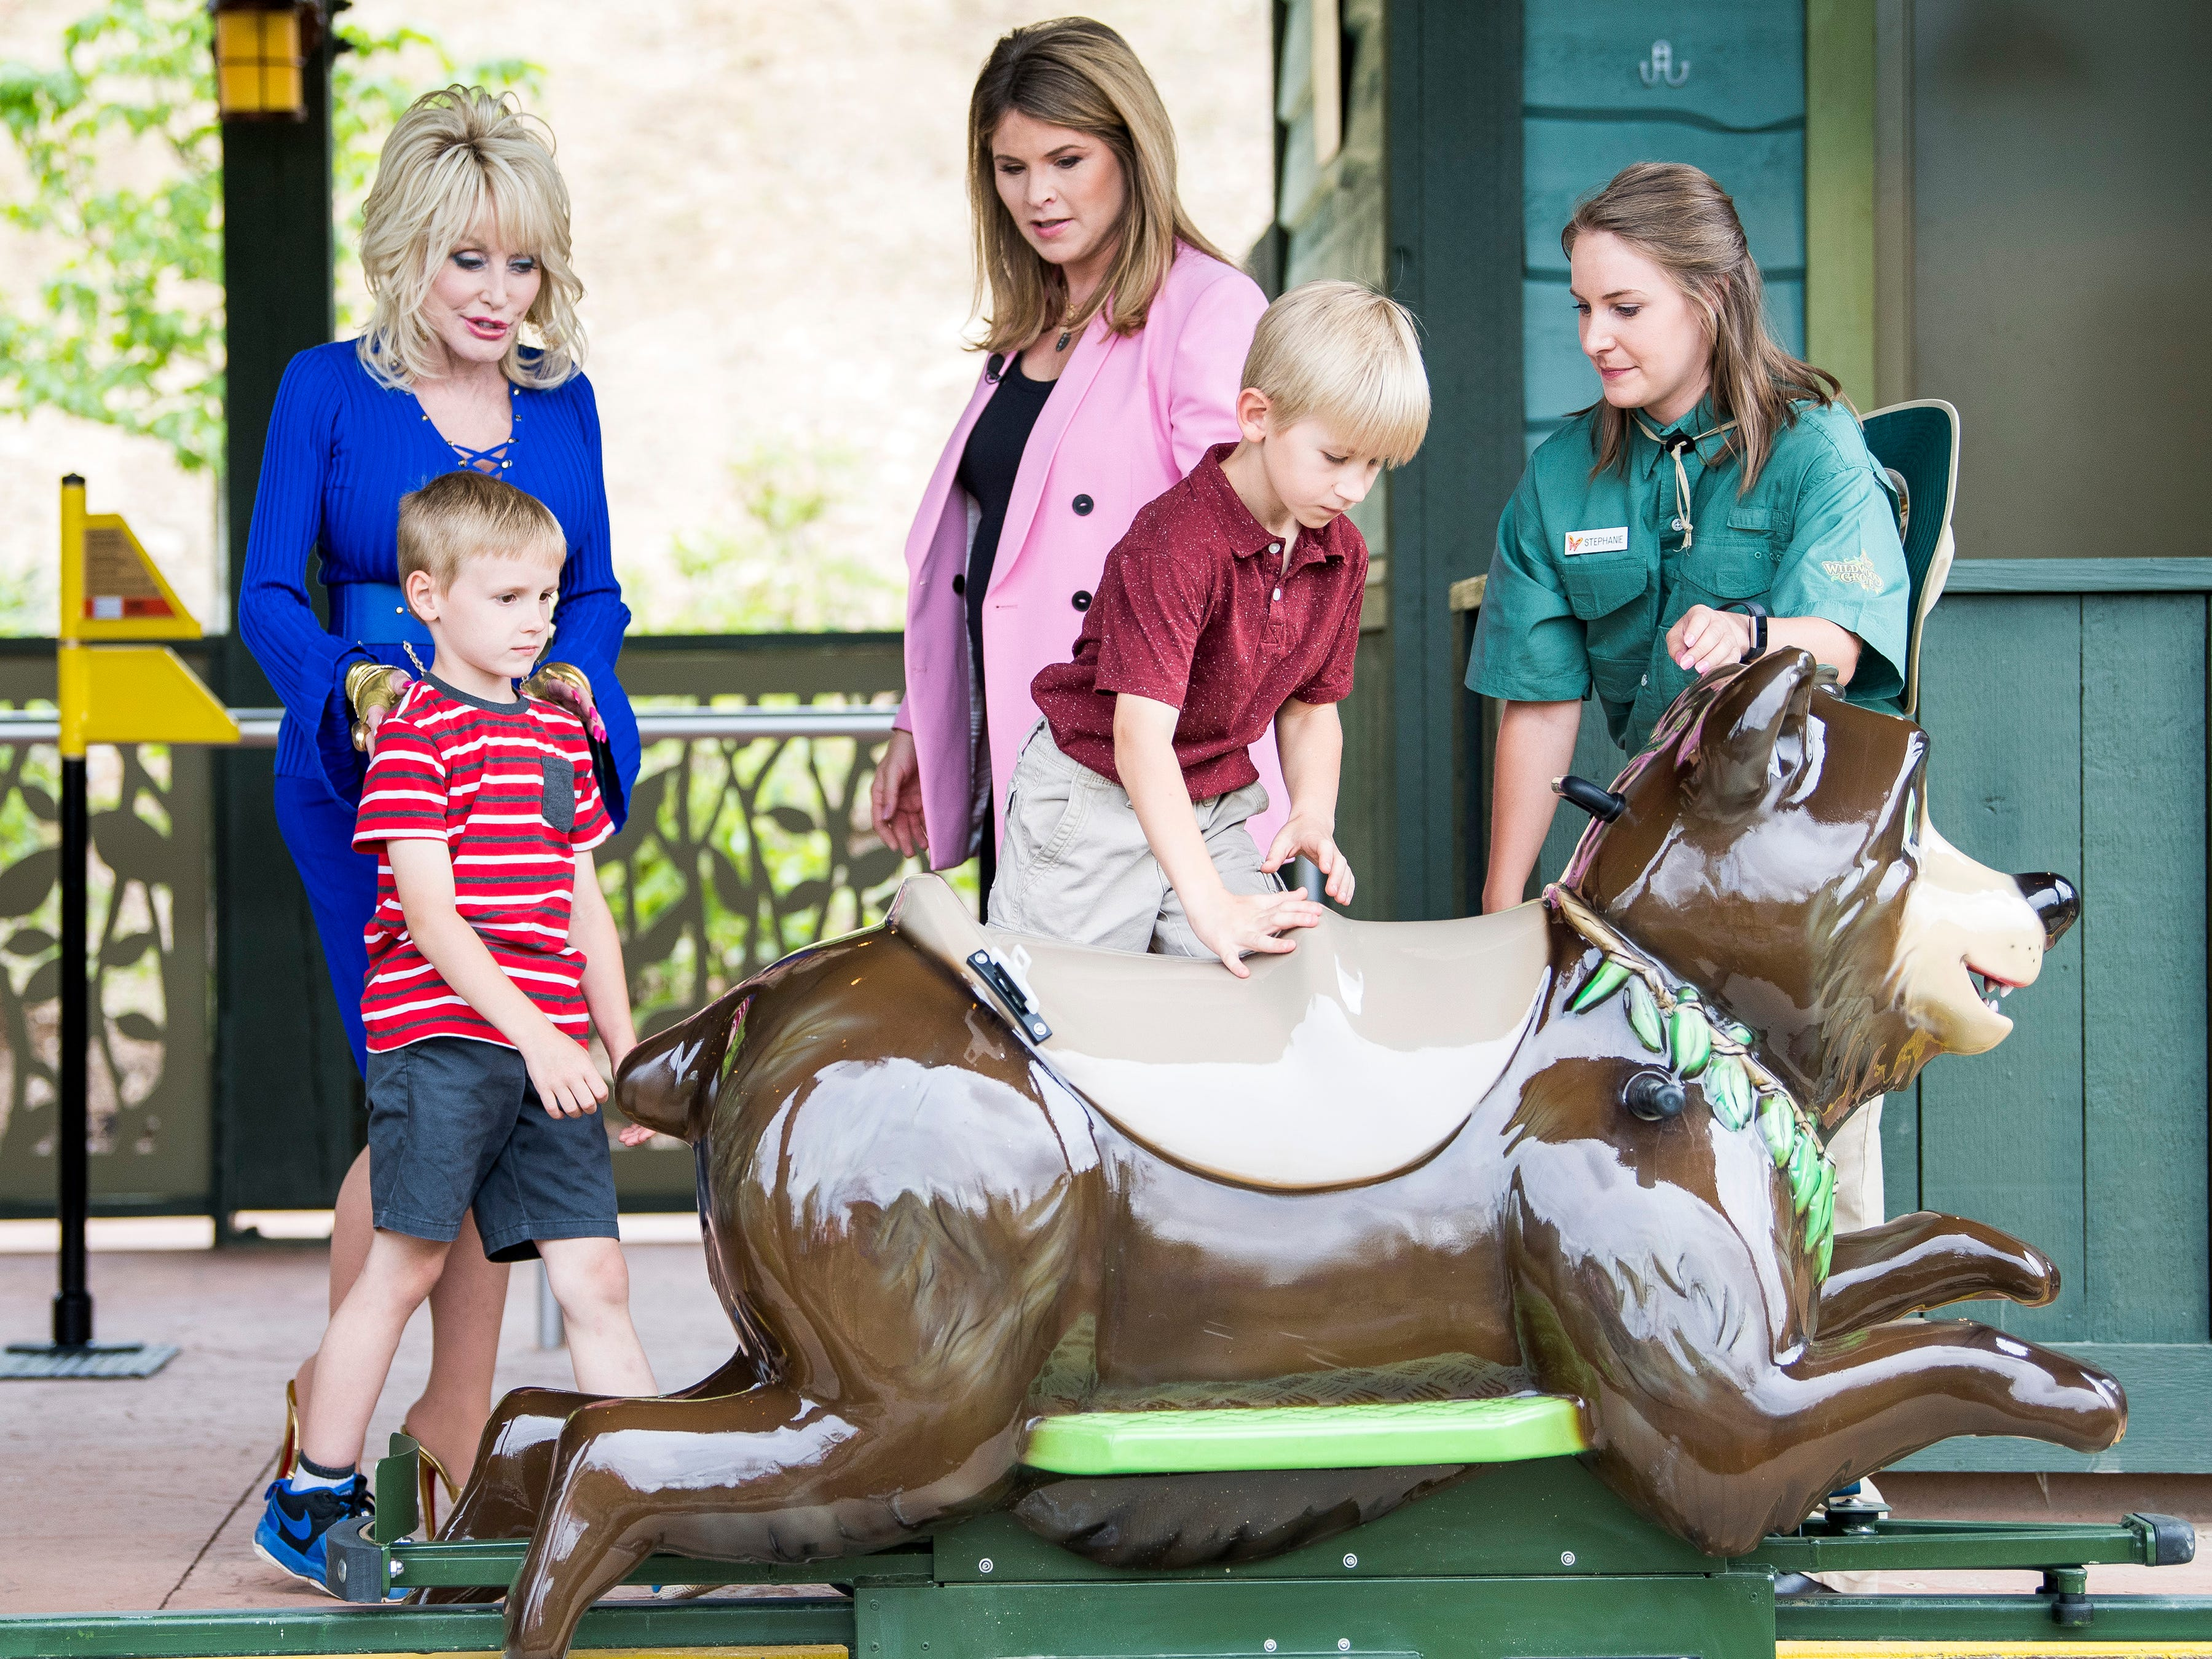 Dolly Parton and Jenna Bush Hager help children get onto the Black Bear Trail ride while filming a segment during the grand opening of Dollywood's new Wildwood Grove expansion on Friday, May 10, 2019.